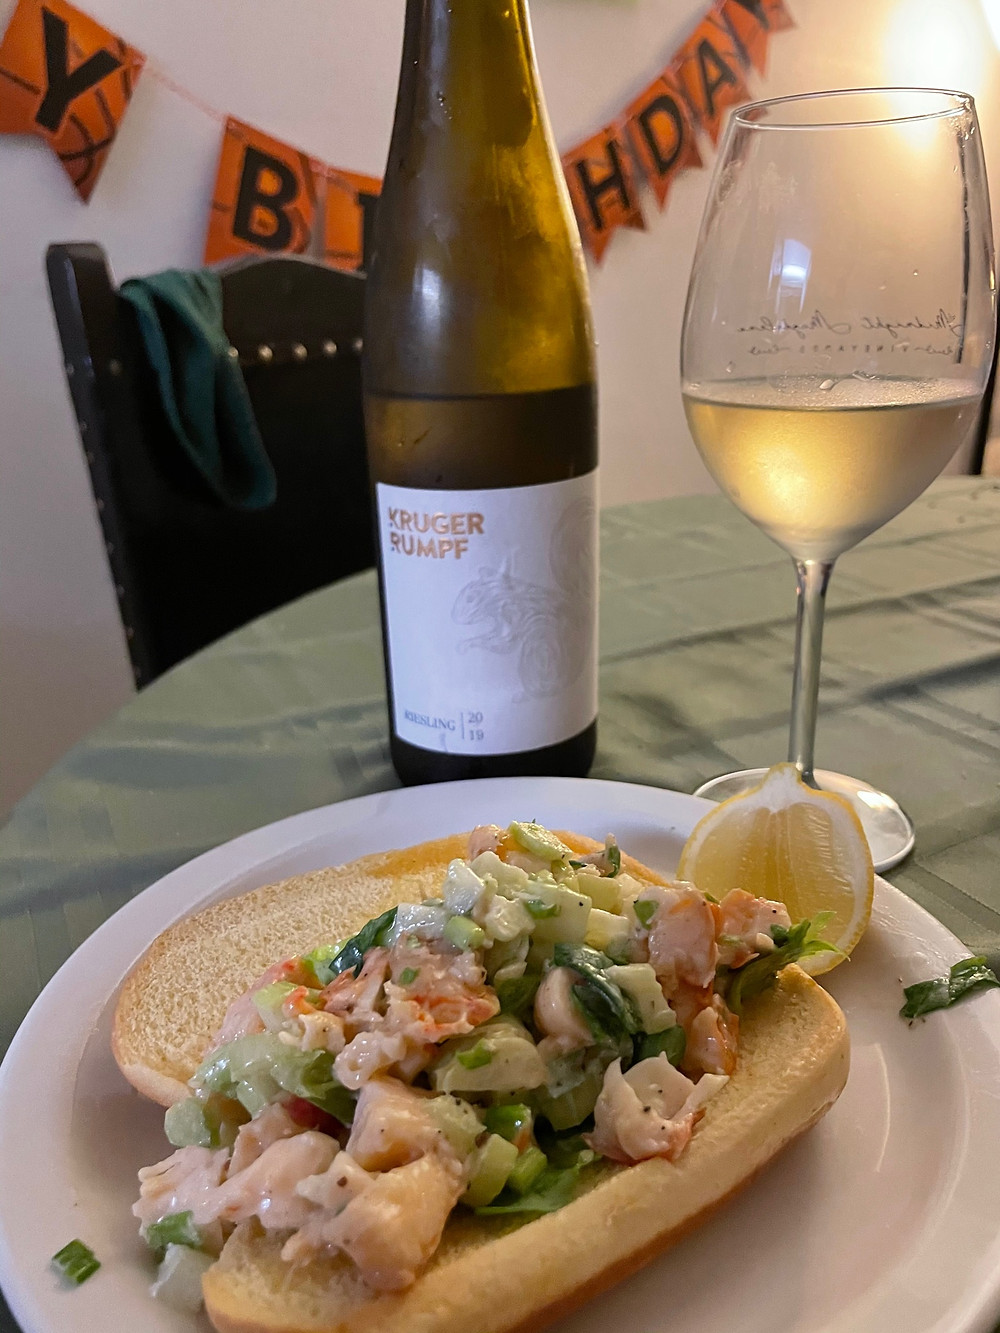 German Riesling Wine tasted with a Lobster Roll, also a good happy brithday wine image